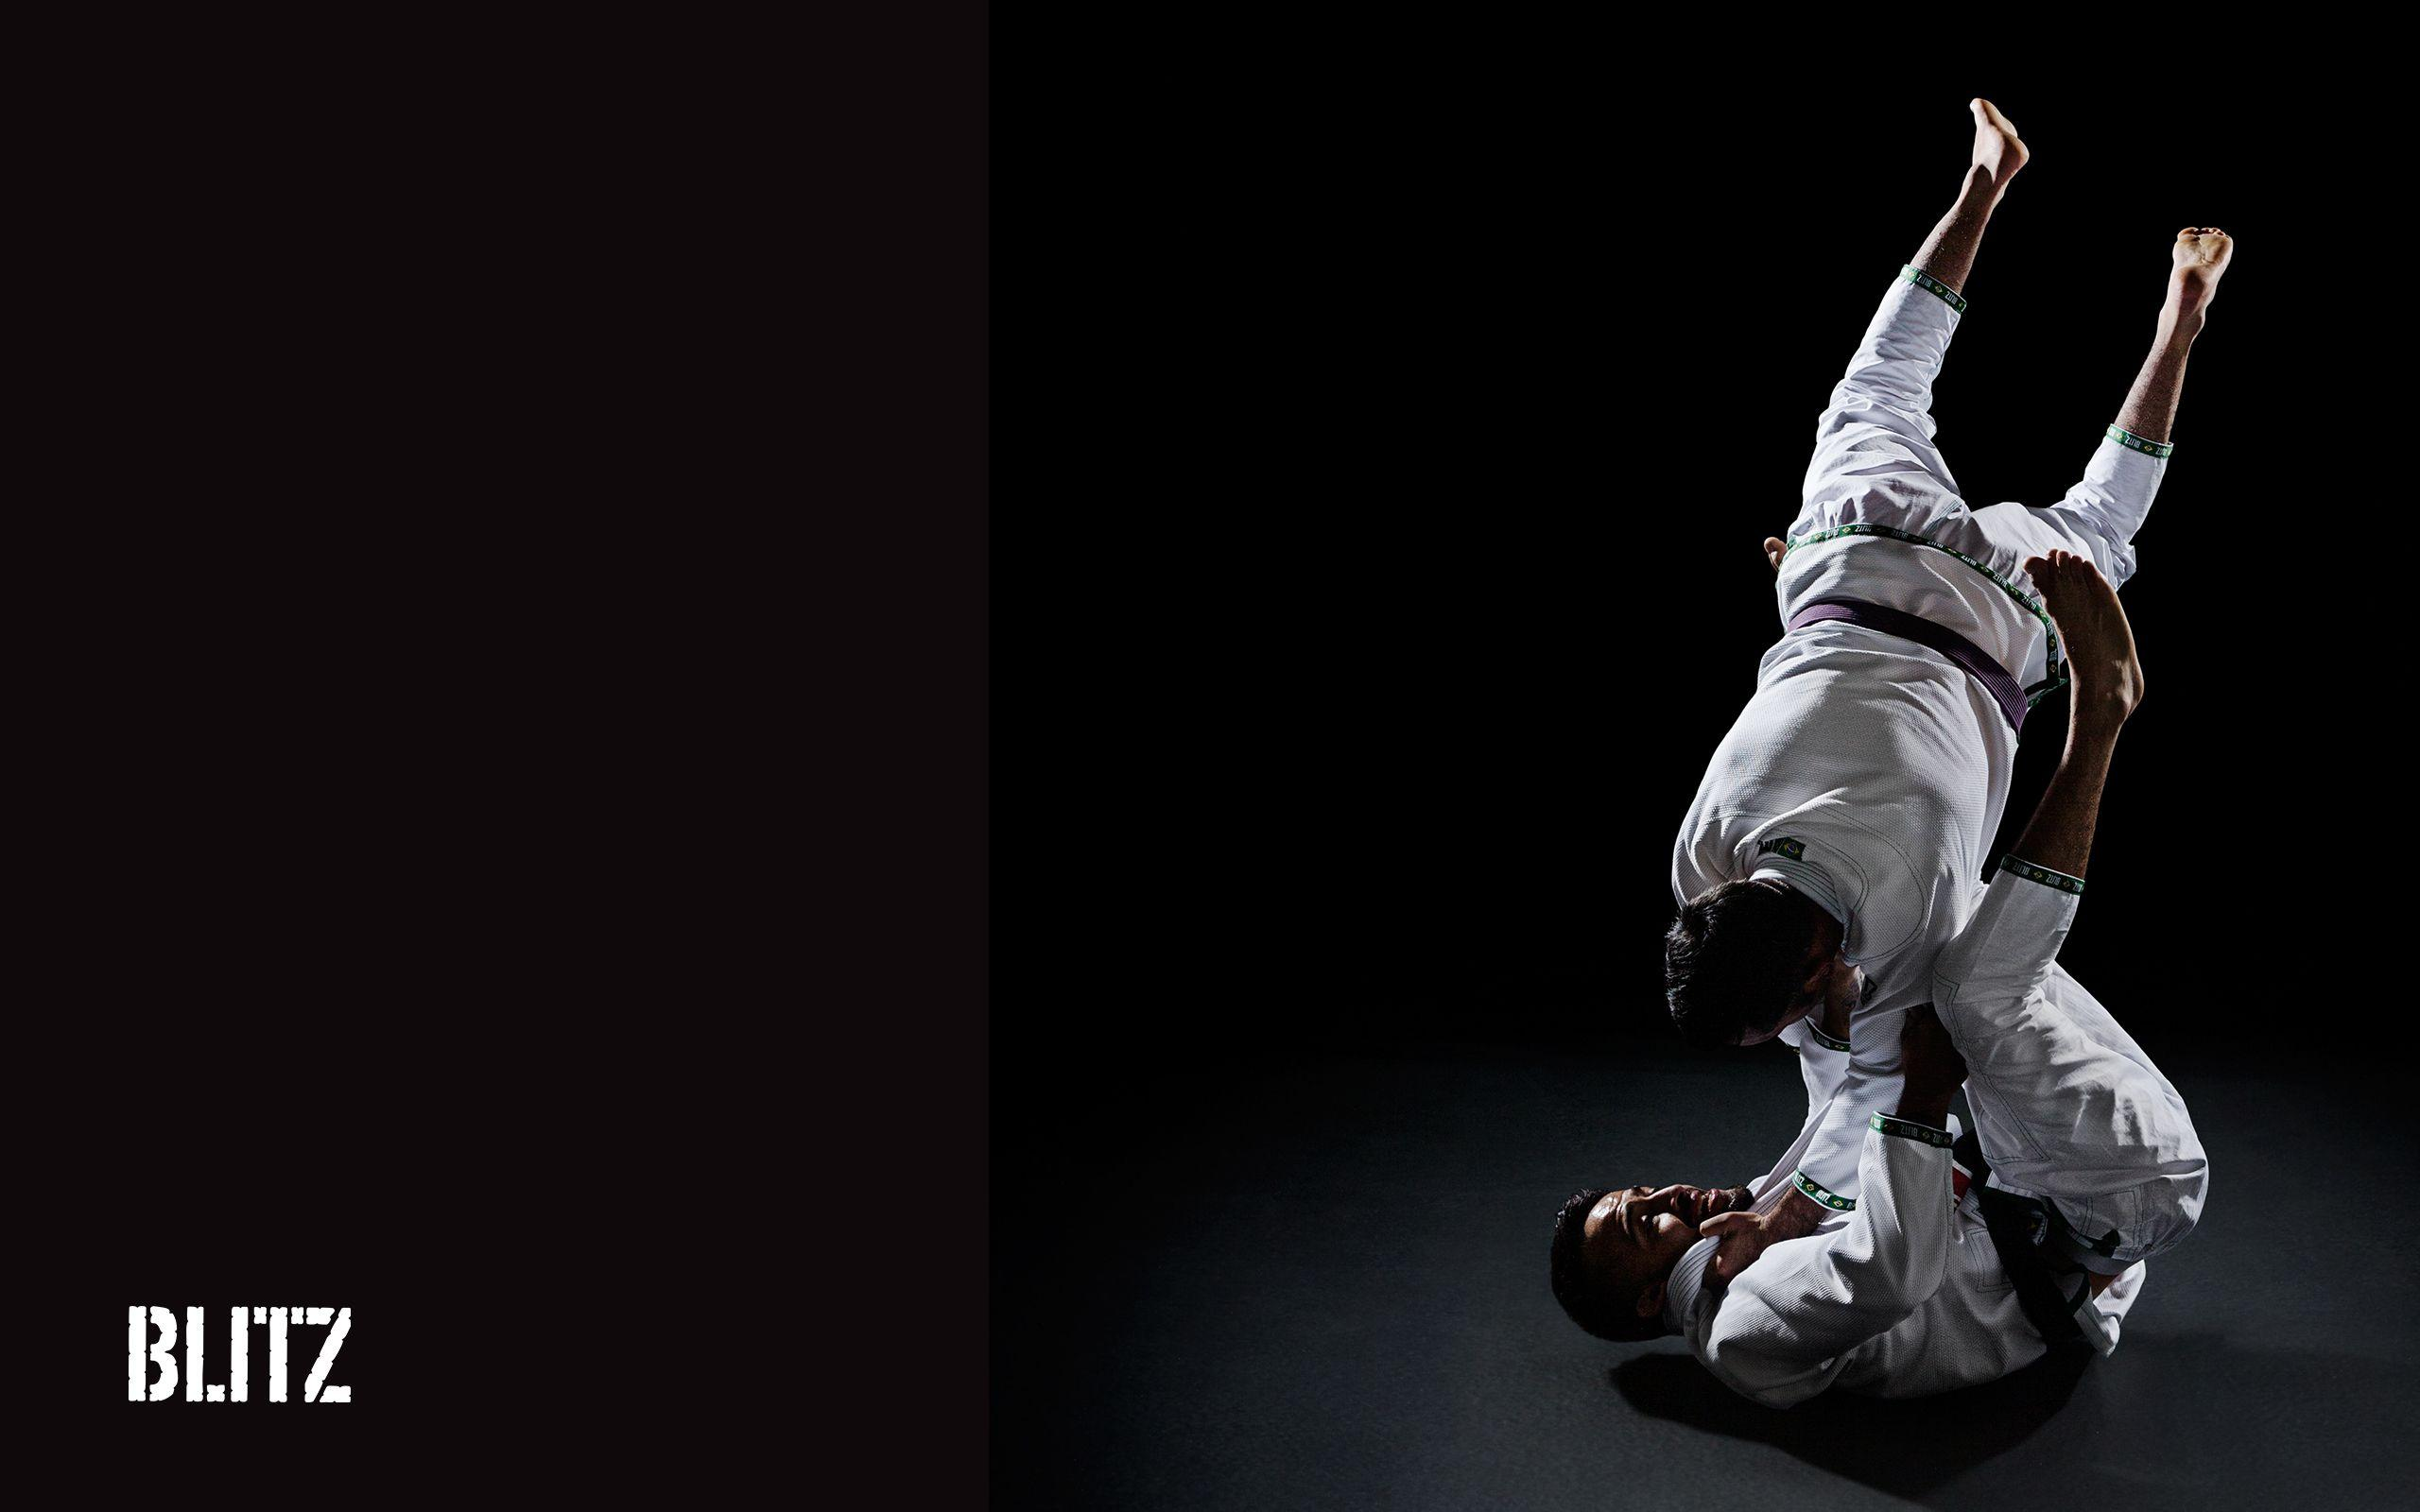 Blitz Brazilian Jiu Jitsu Wallpapers